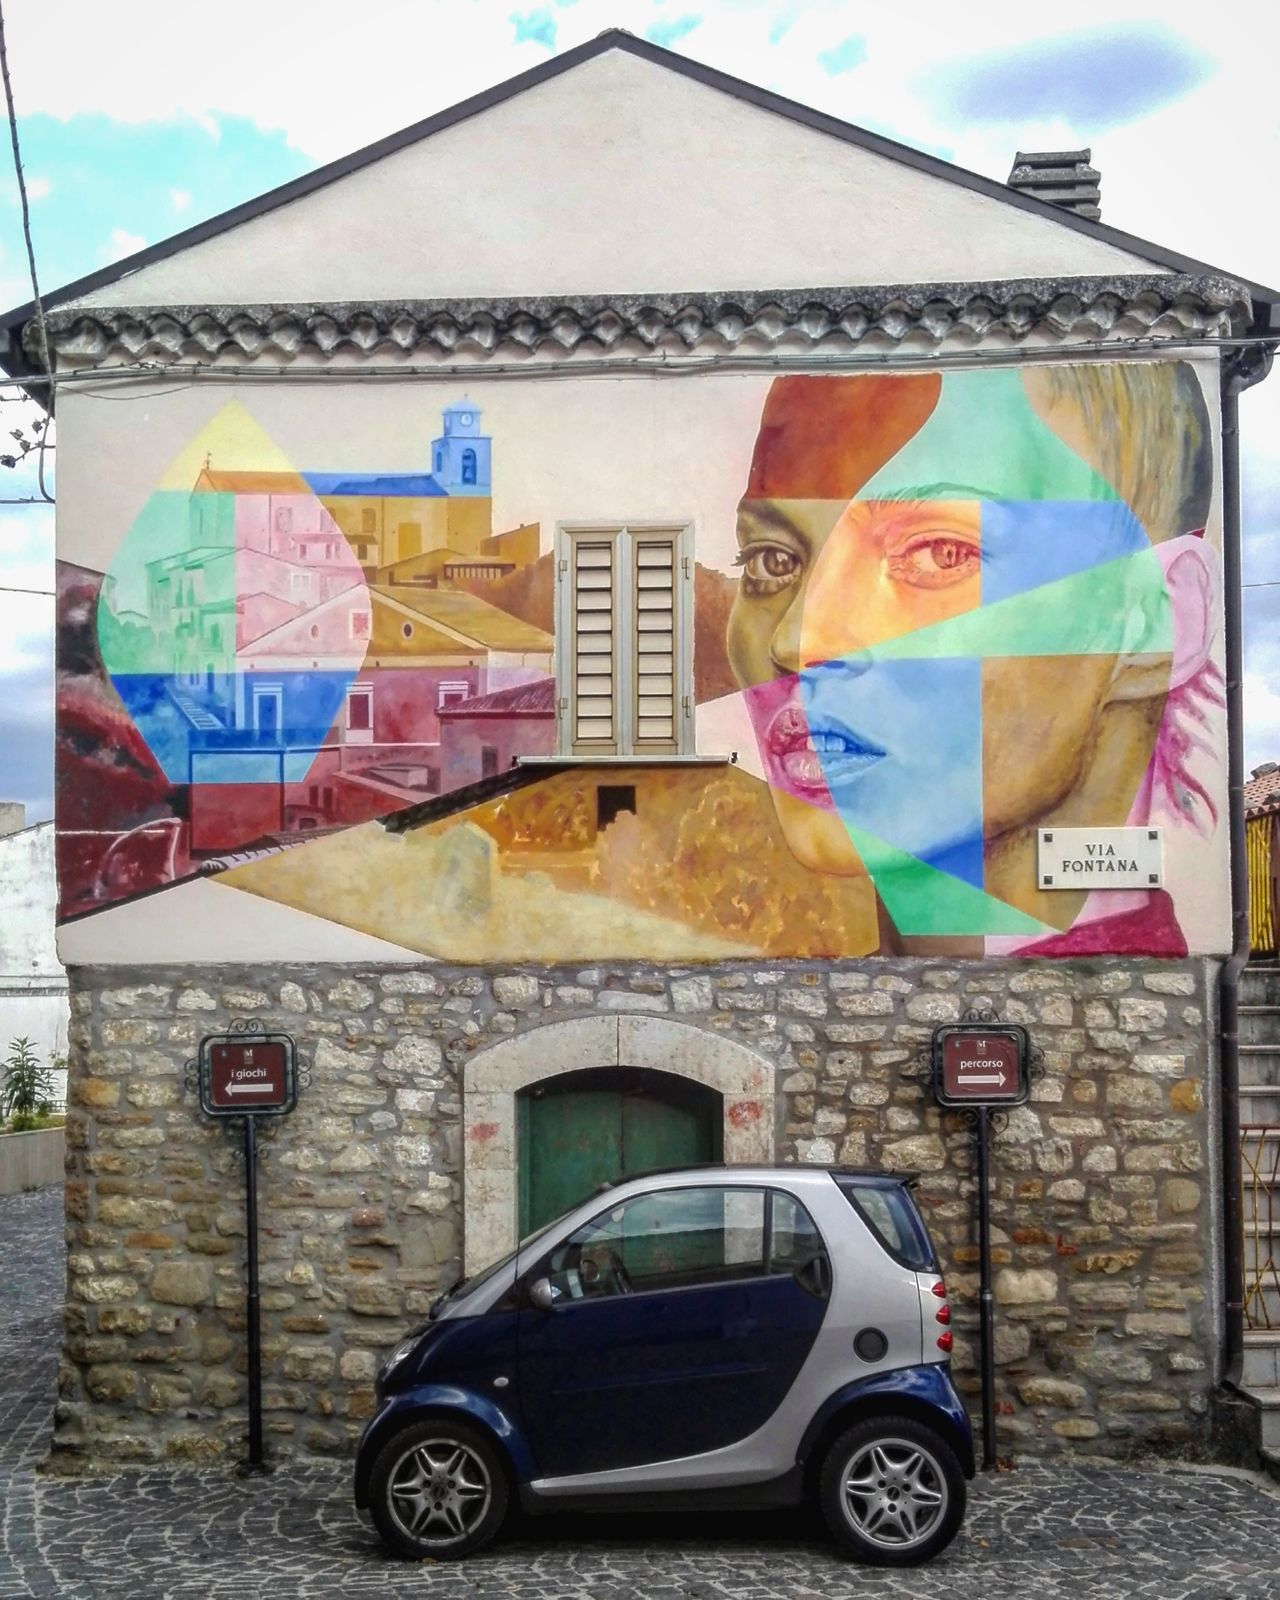 Car Multi Colored Smart Architecture Wall Graffiti Wall Decoration Graffiti Building Exterior Art Museo All'aperto Museum Open Museum Stone Material Stone Stone Architecture Casalciprano Molise Italy Village Borgo Antico Italia Borgo Street Art Kate Moss